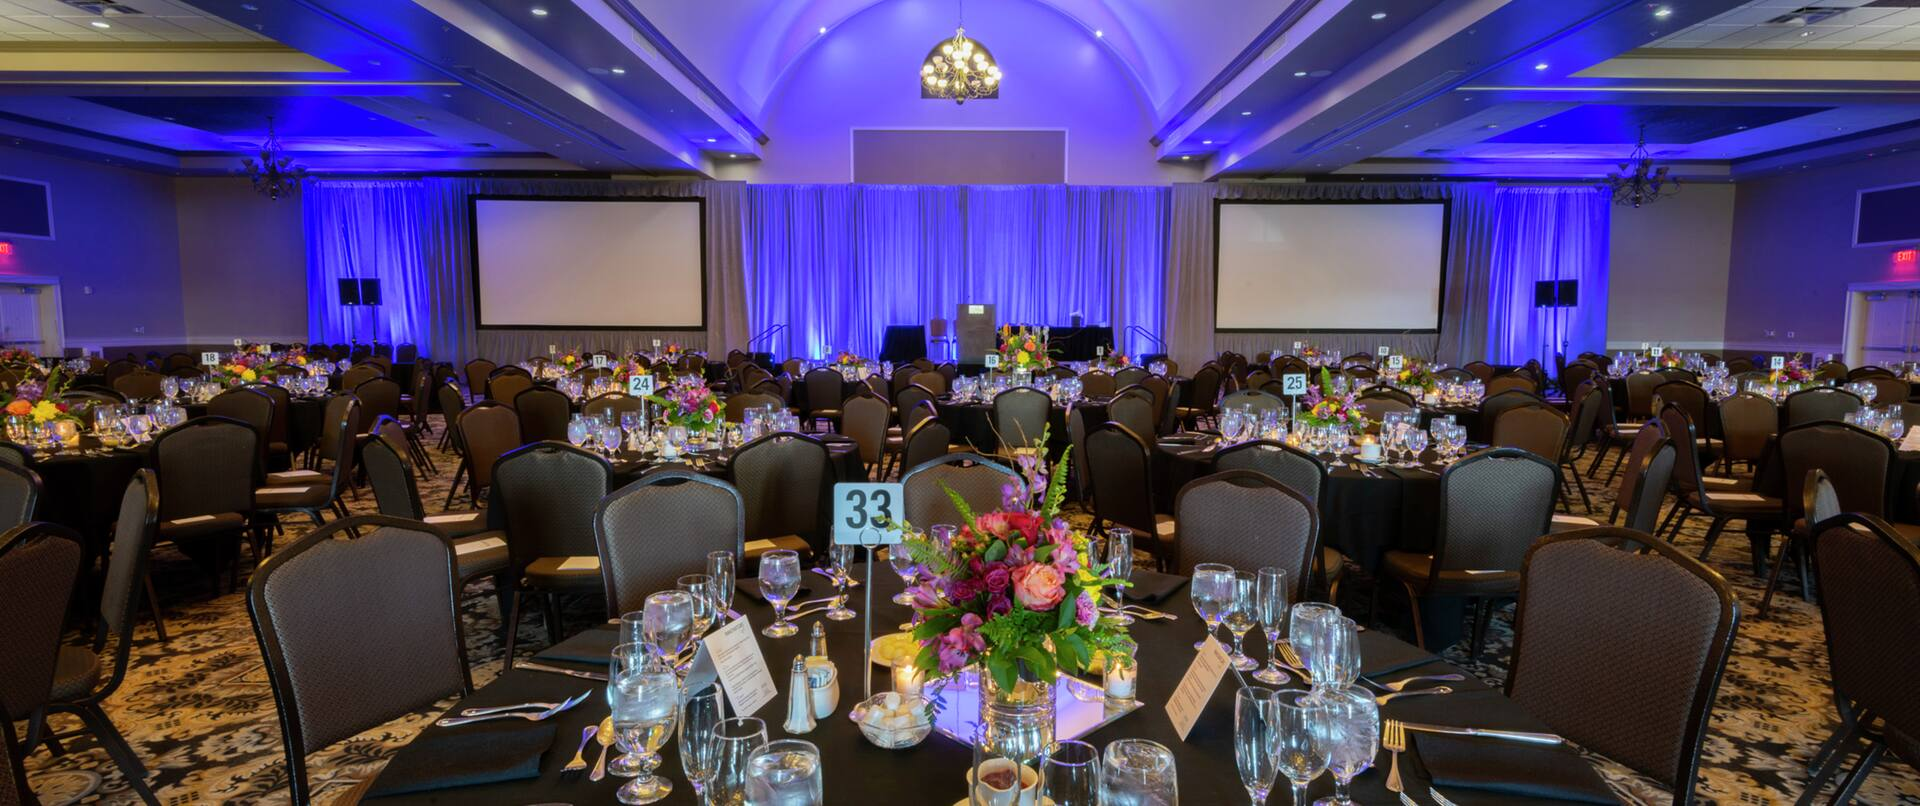 Elegant Conference & Event Center Setup for Event